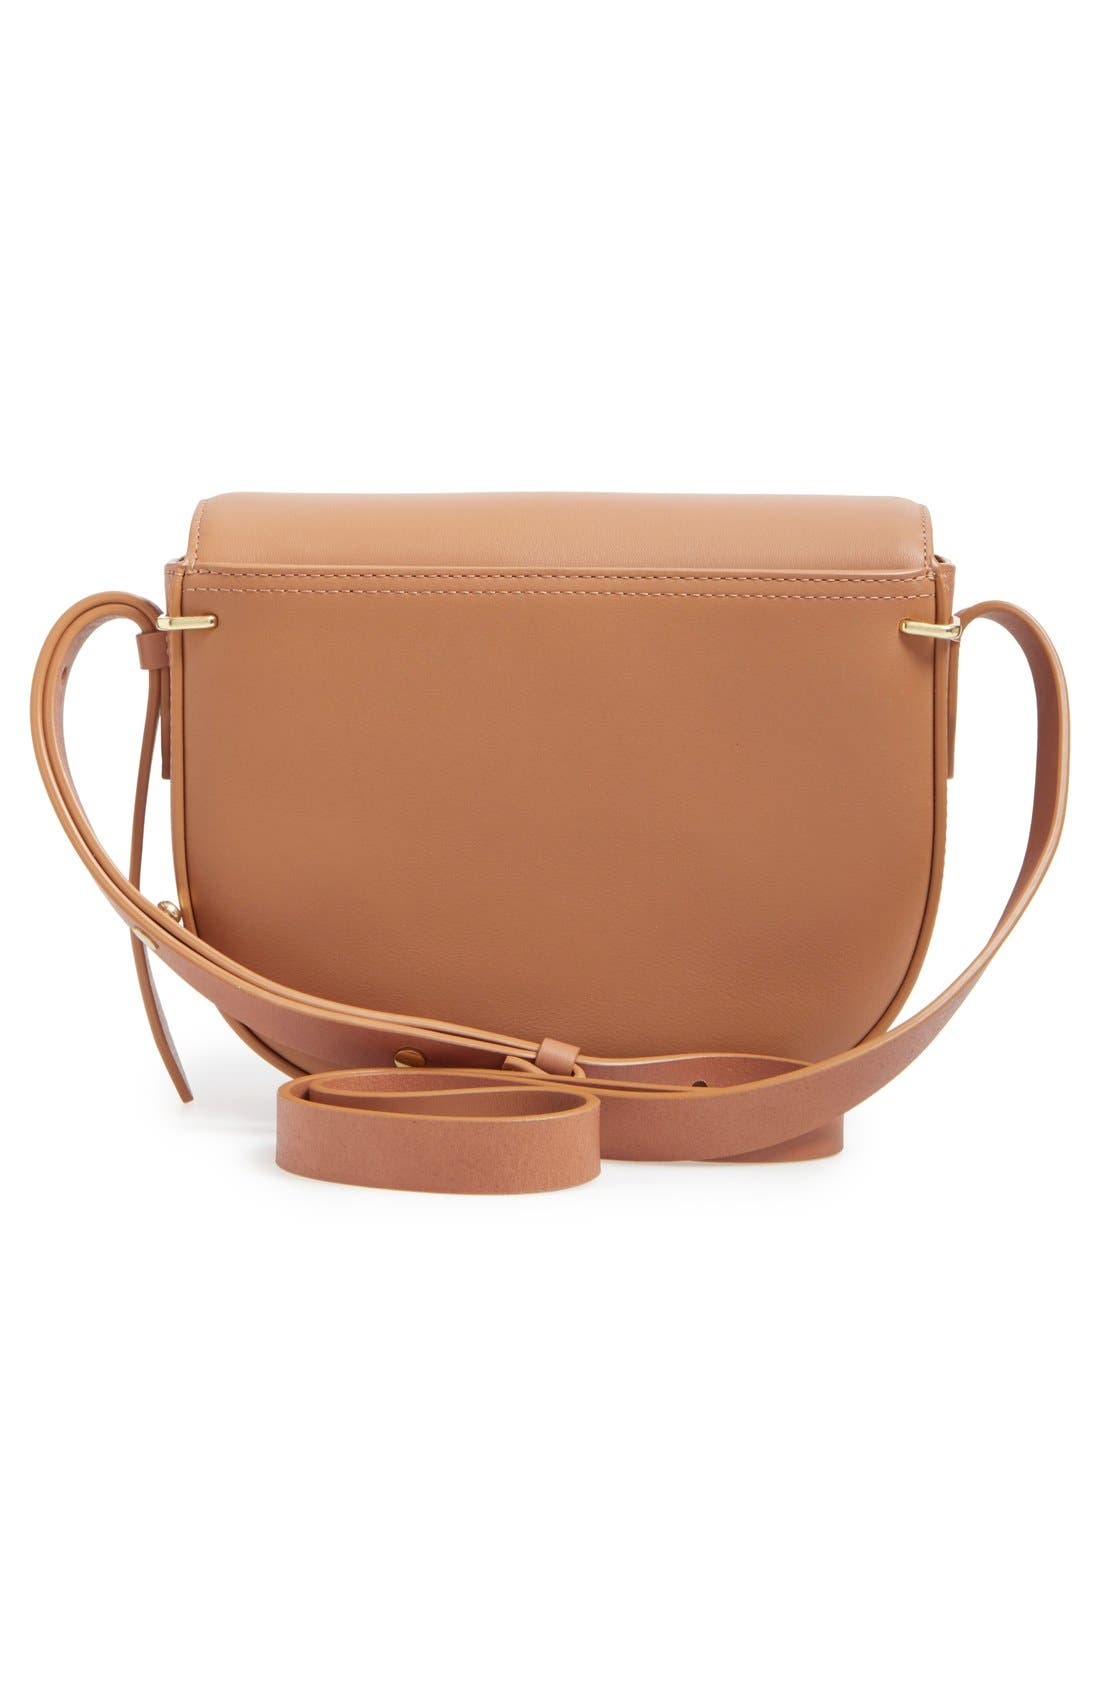 Alternate Image 3  - 3.1 Phillip Lim Alix Leather Saddle Bag